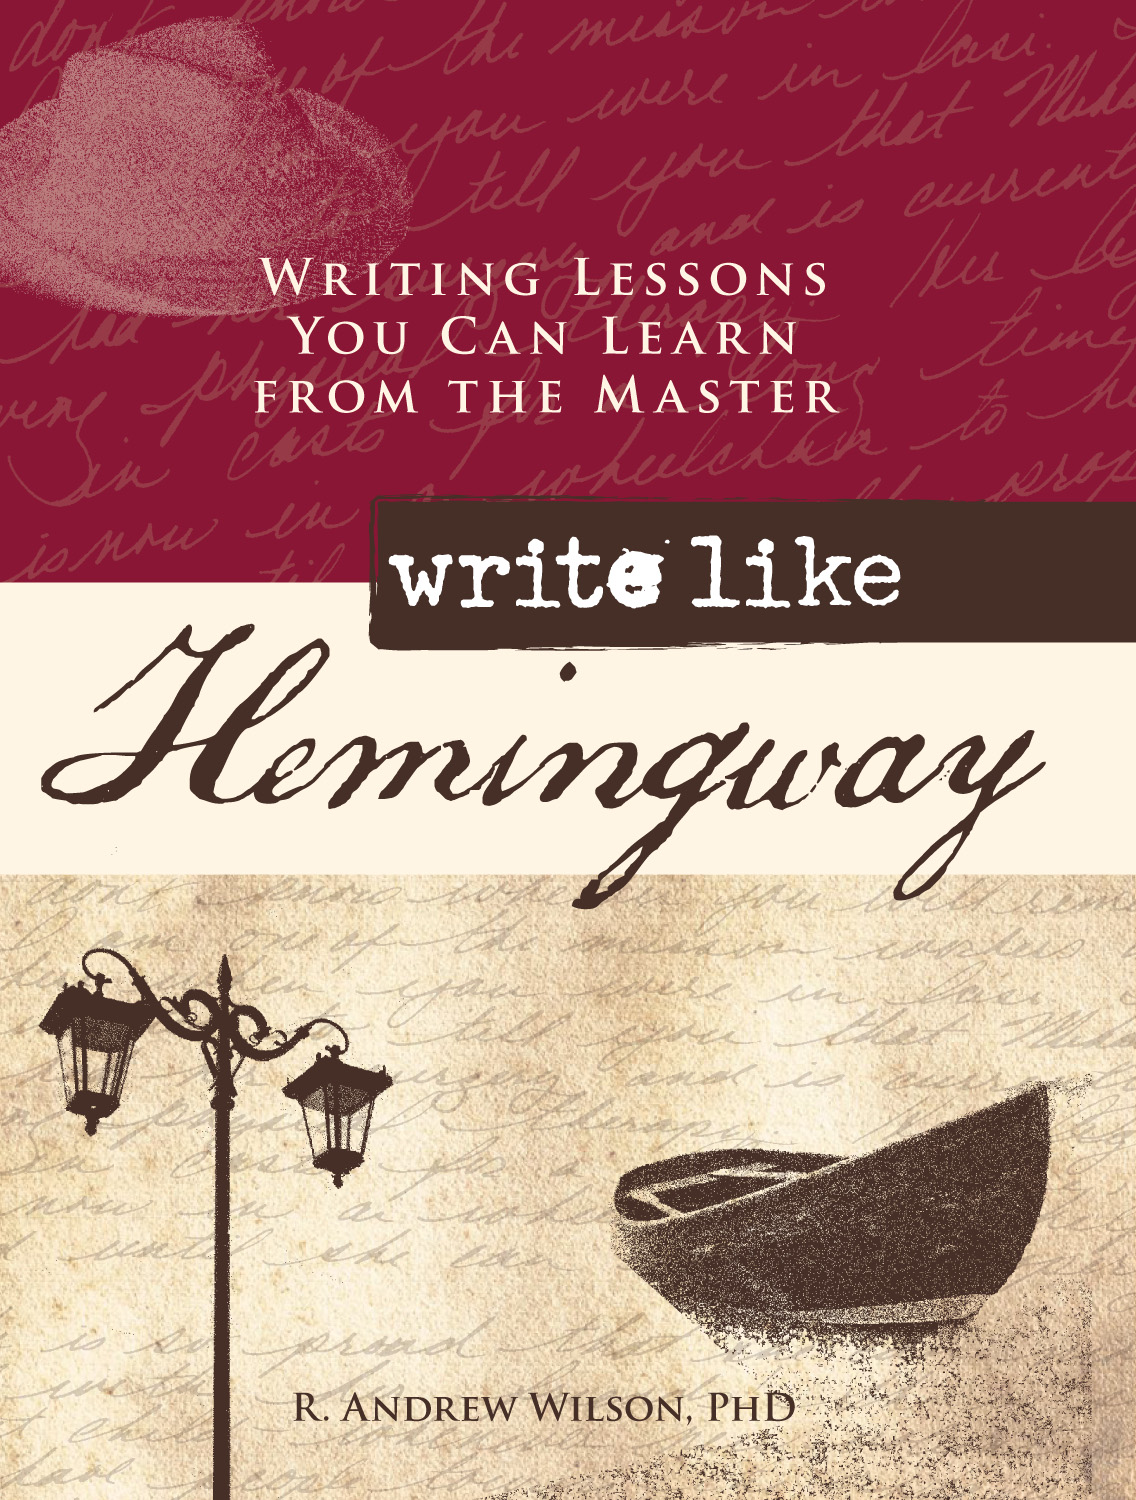 writing a thesis hemingway Follow when writing a thesis statement make an assertion, not an observation or fact no ernest hemingway's novel, the old man and the sea, is about a fisherman and a fish yes in his novel the old man and the sea, ernest hemmingway uses a fisherman's efforts at catching a fish as a symbol to represent the futility of chasing one's dreams.